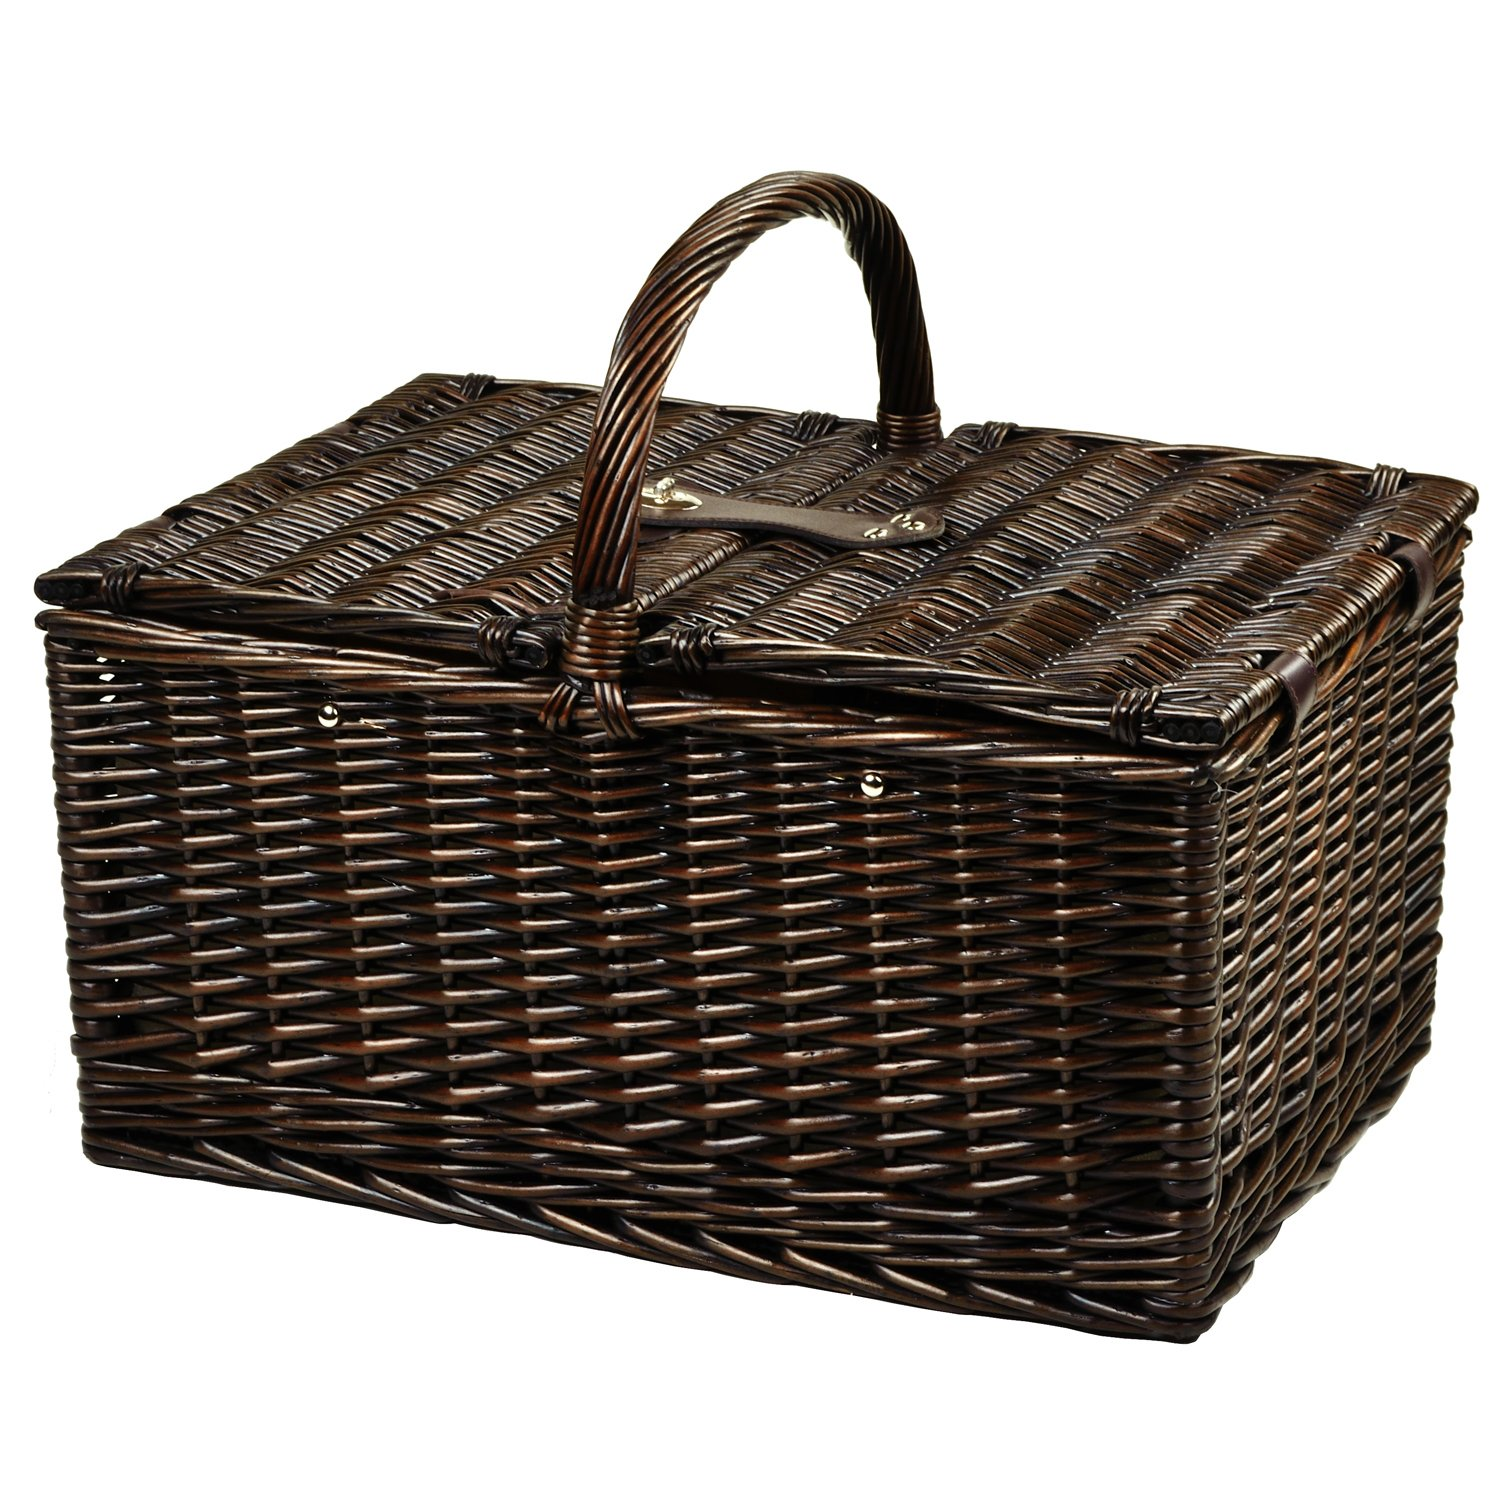 Picnic at Ascot Buckingham Willow Picnic Basket With Blanket And Coffee Service, Brown Wicker Diamond Orange